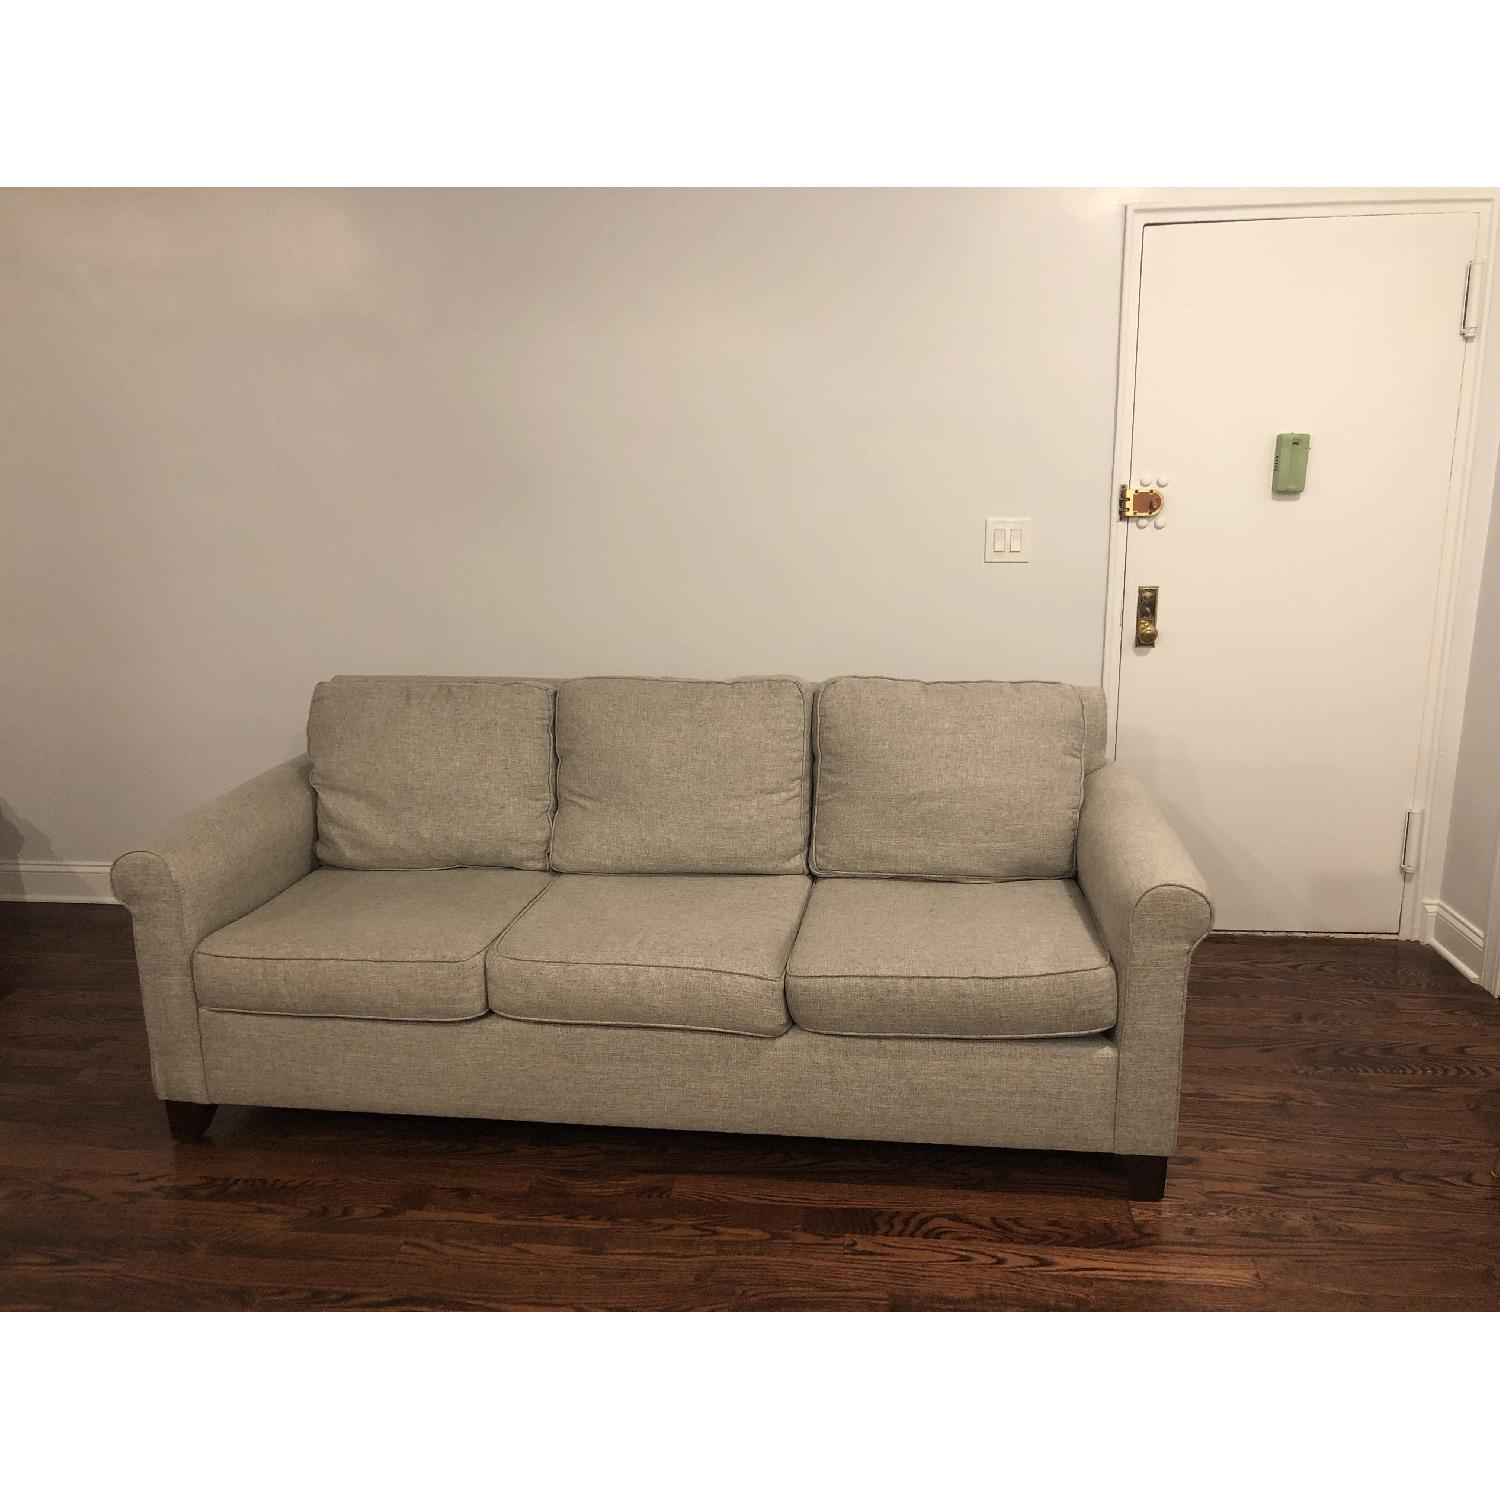 Pottery Barn Cameron Upholstered Sofa - image-2